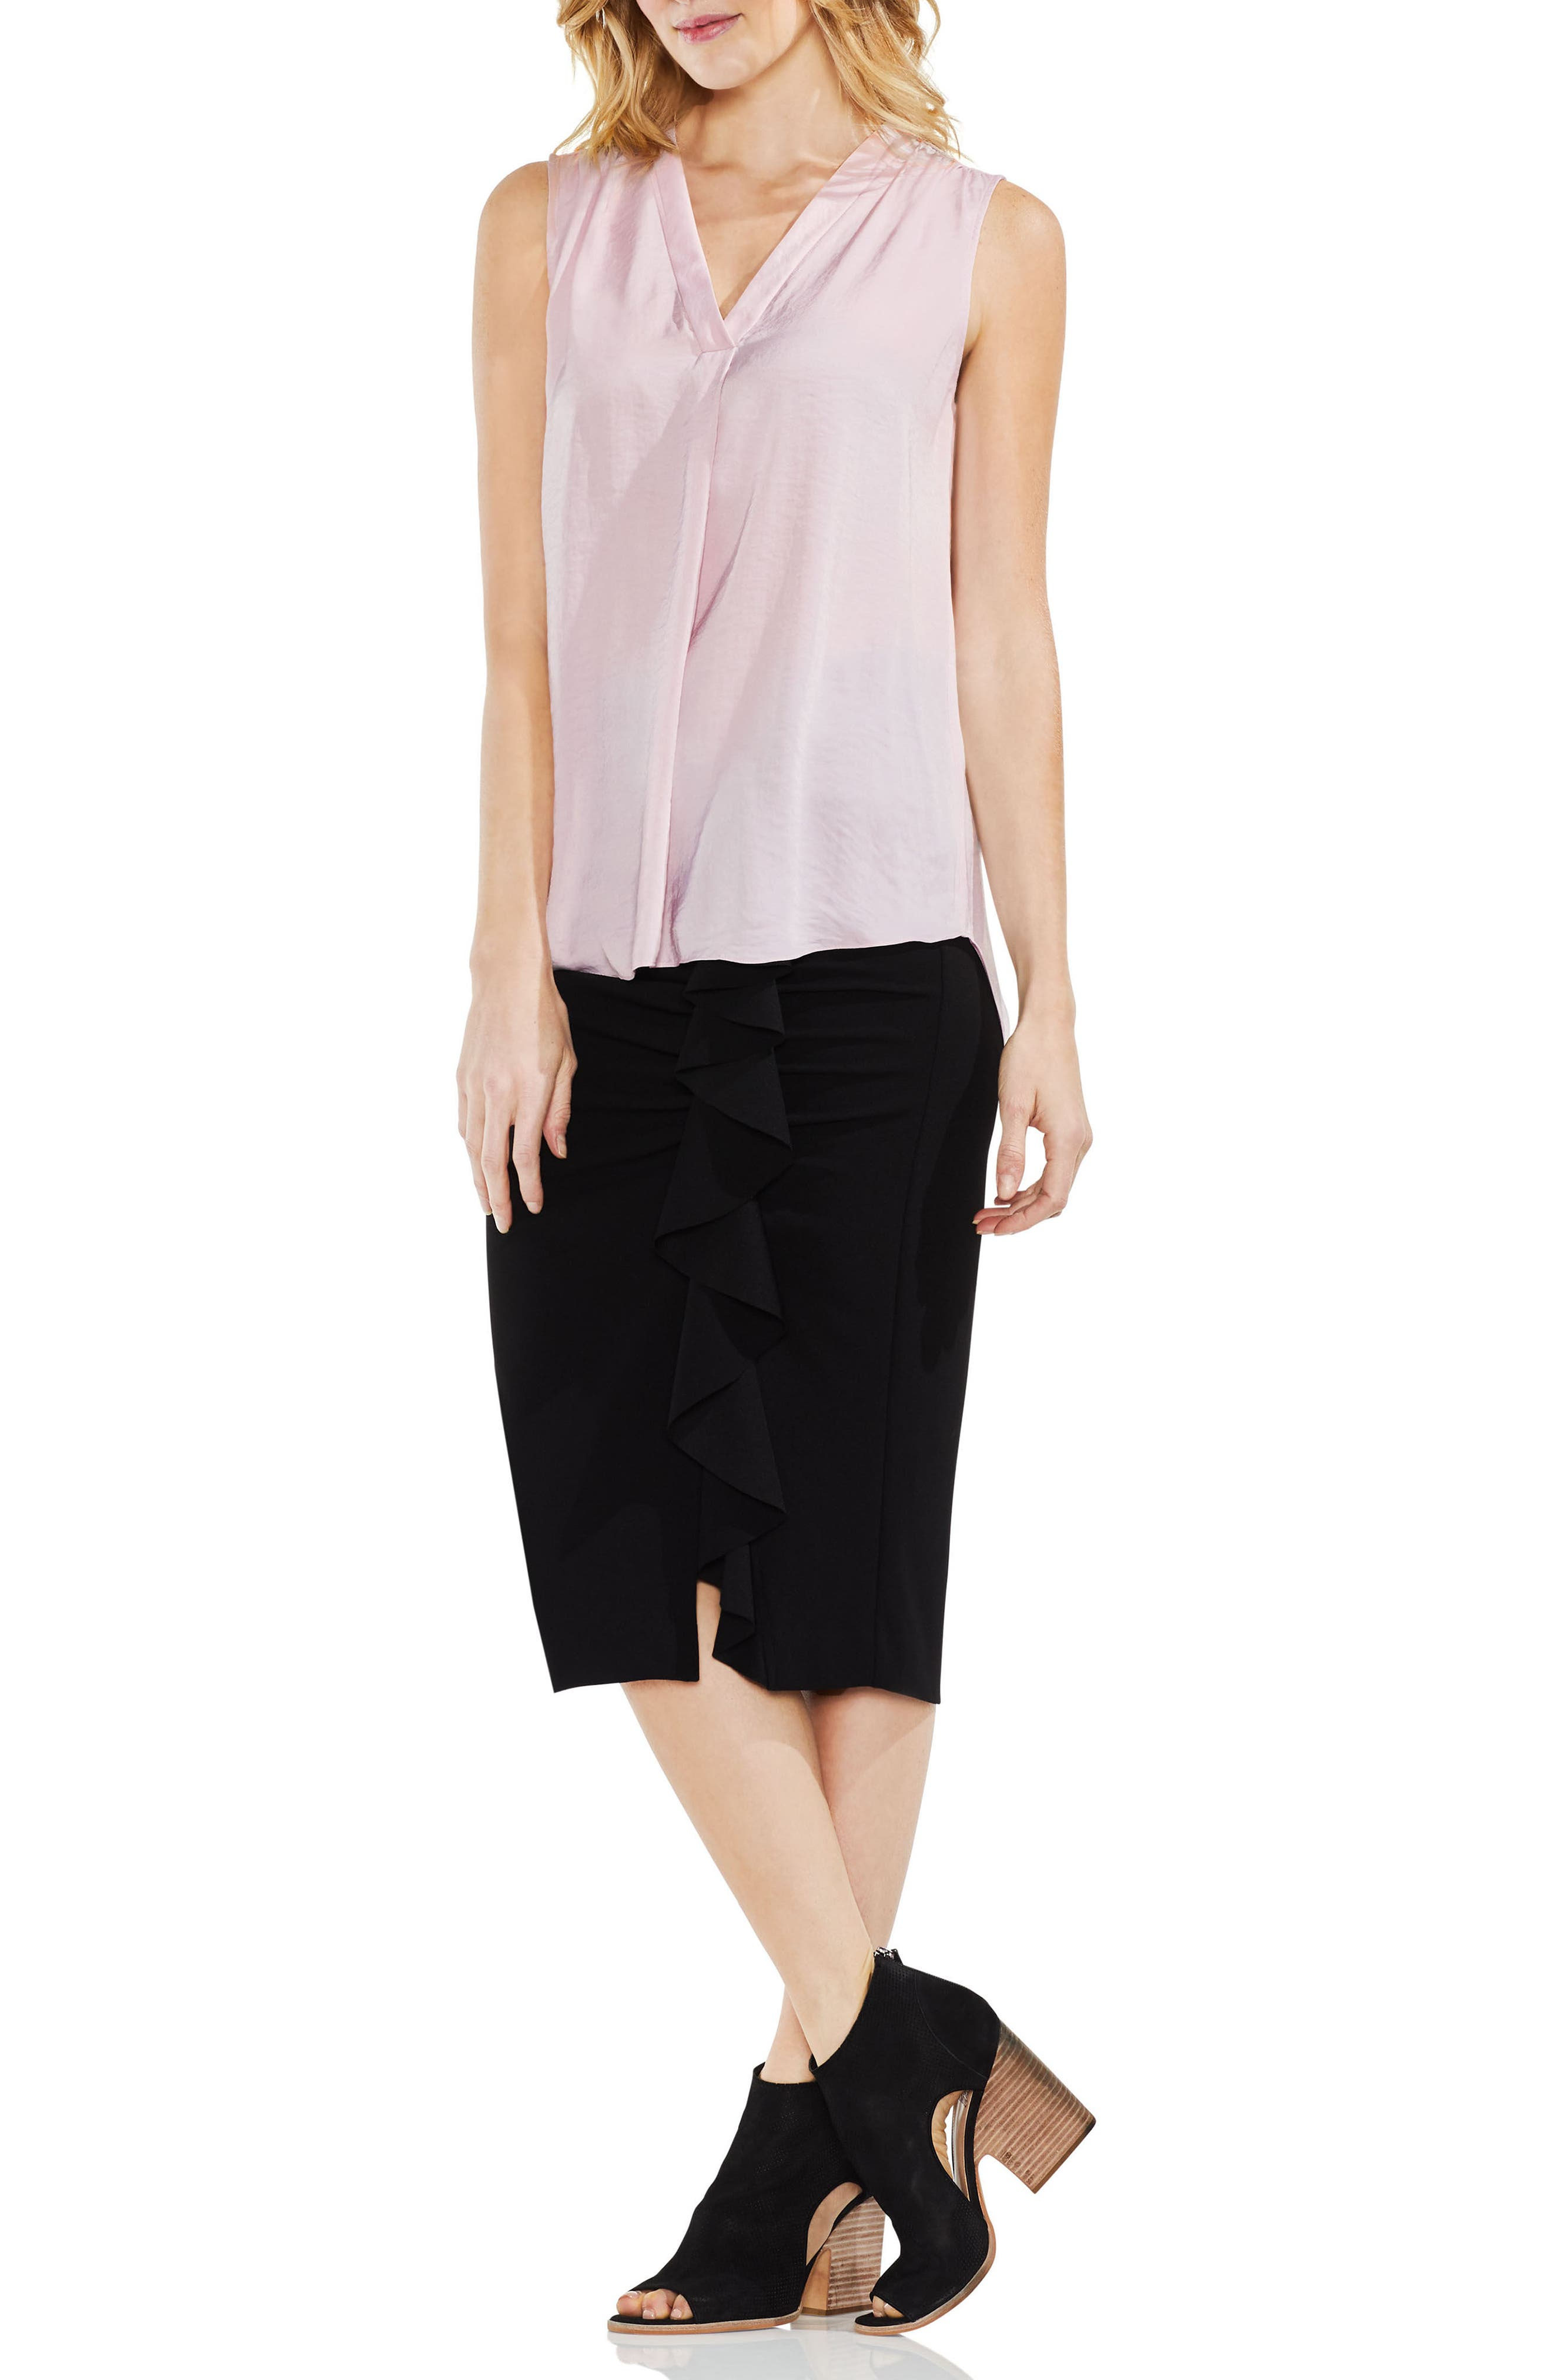 VINCE CAMUTO, Rumpled Satin Blouse, Alternate thumbnail 6, color, PINK BLISS